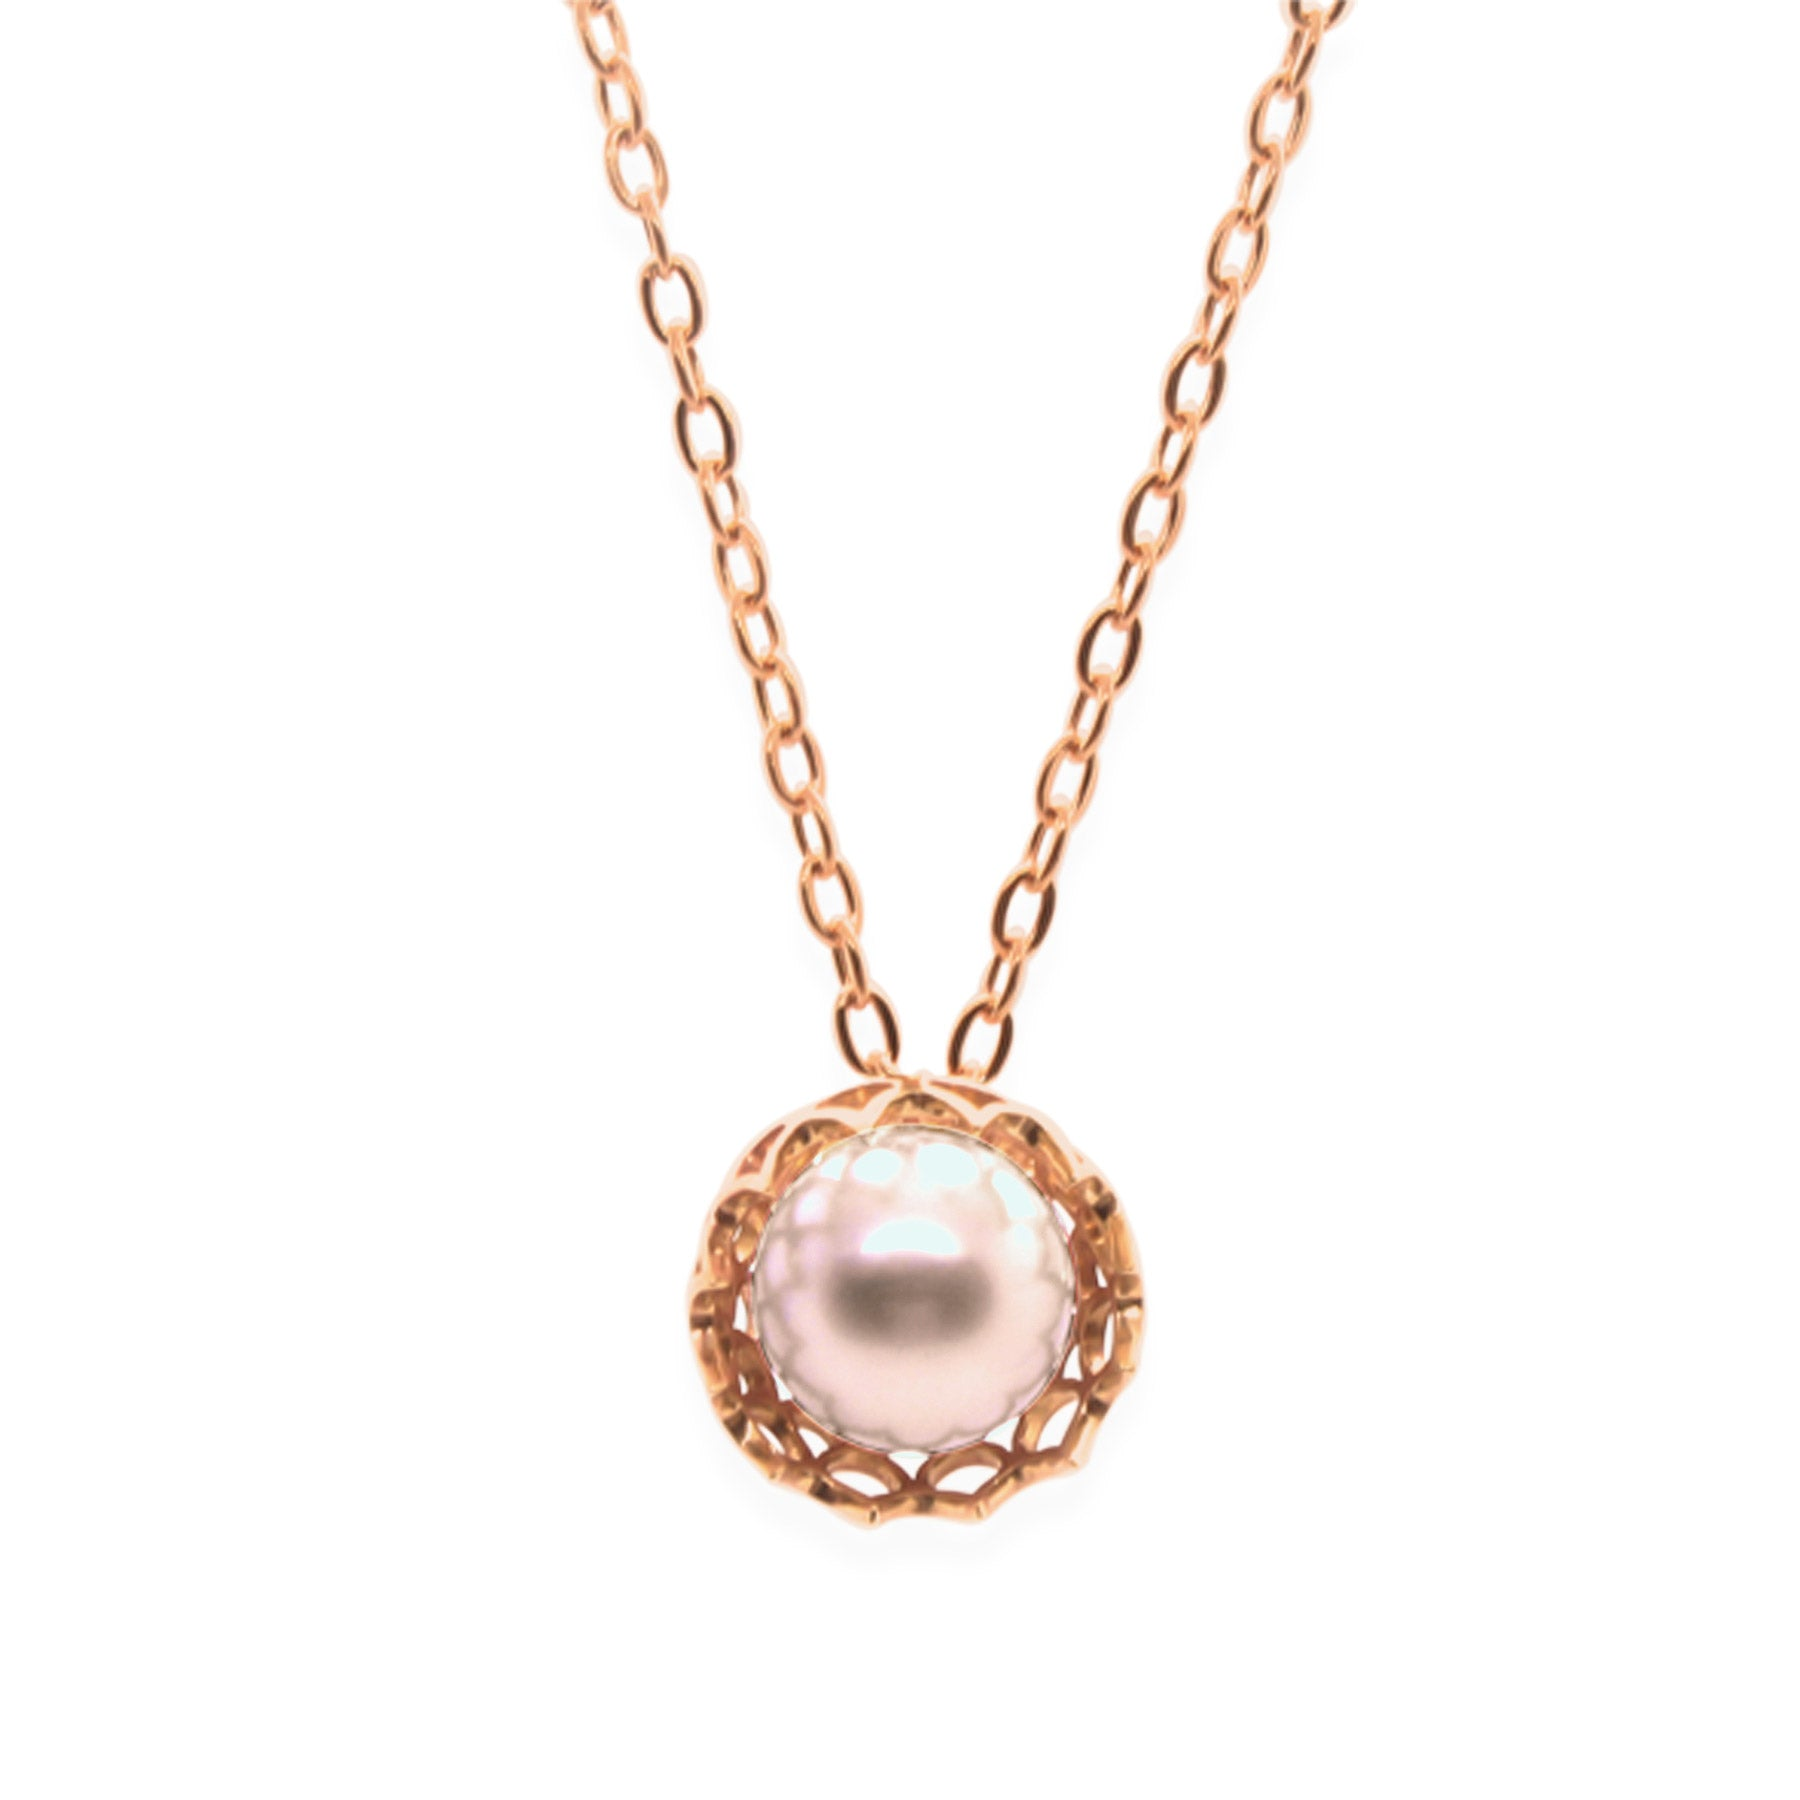 Spike Pearl Pendant Necklace in Solid 18k Rose Gold and Pink Pearl